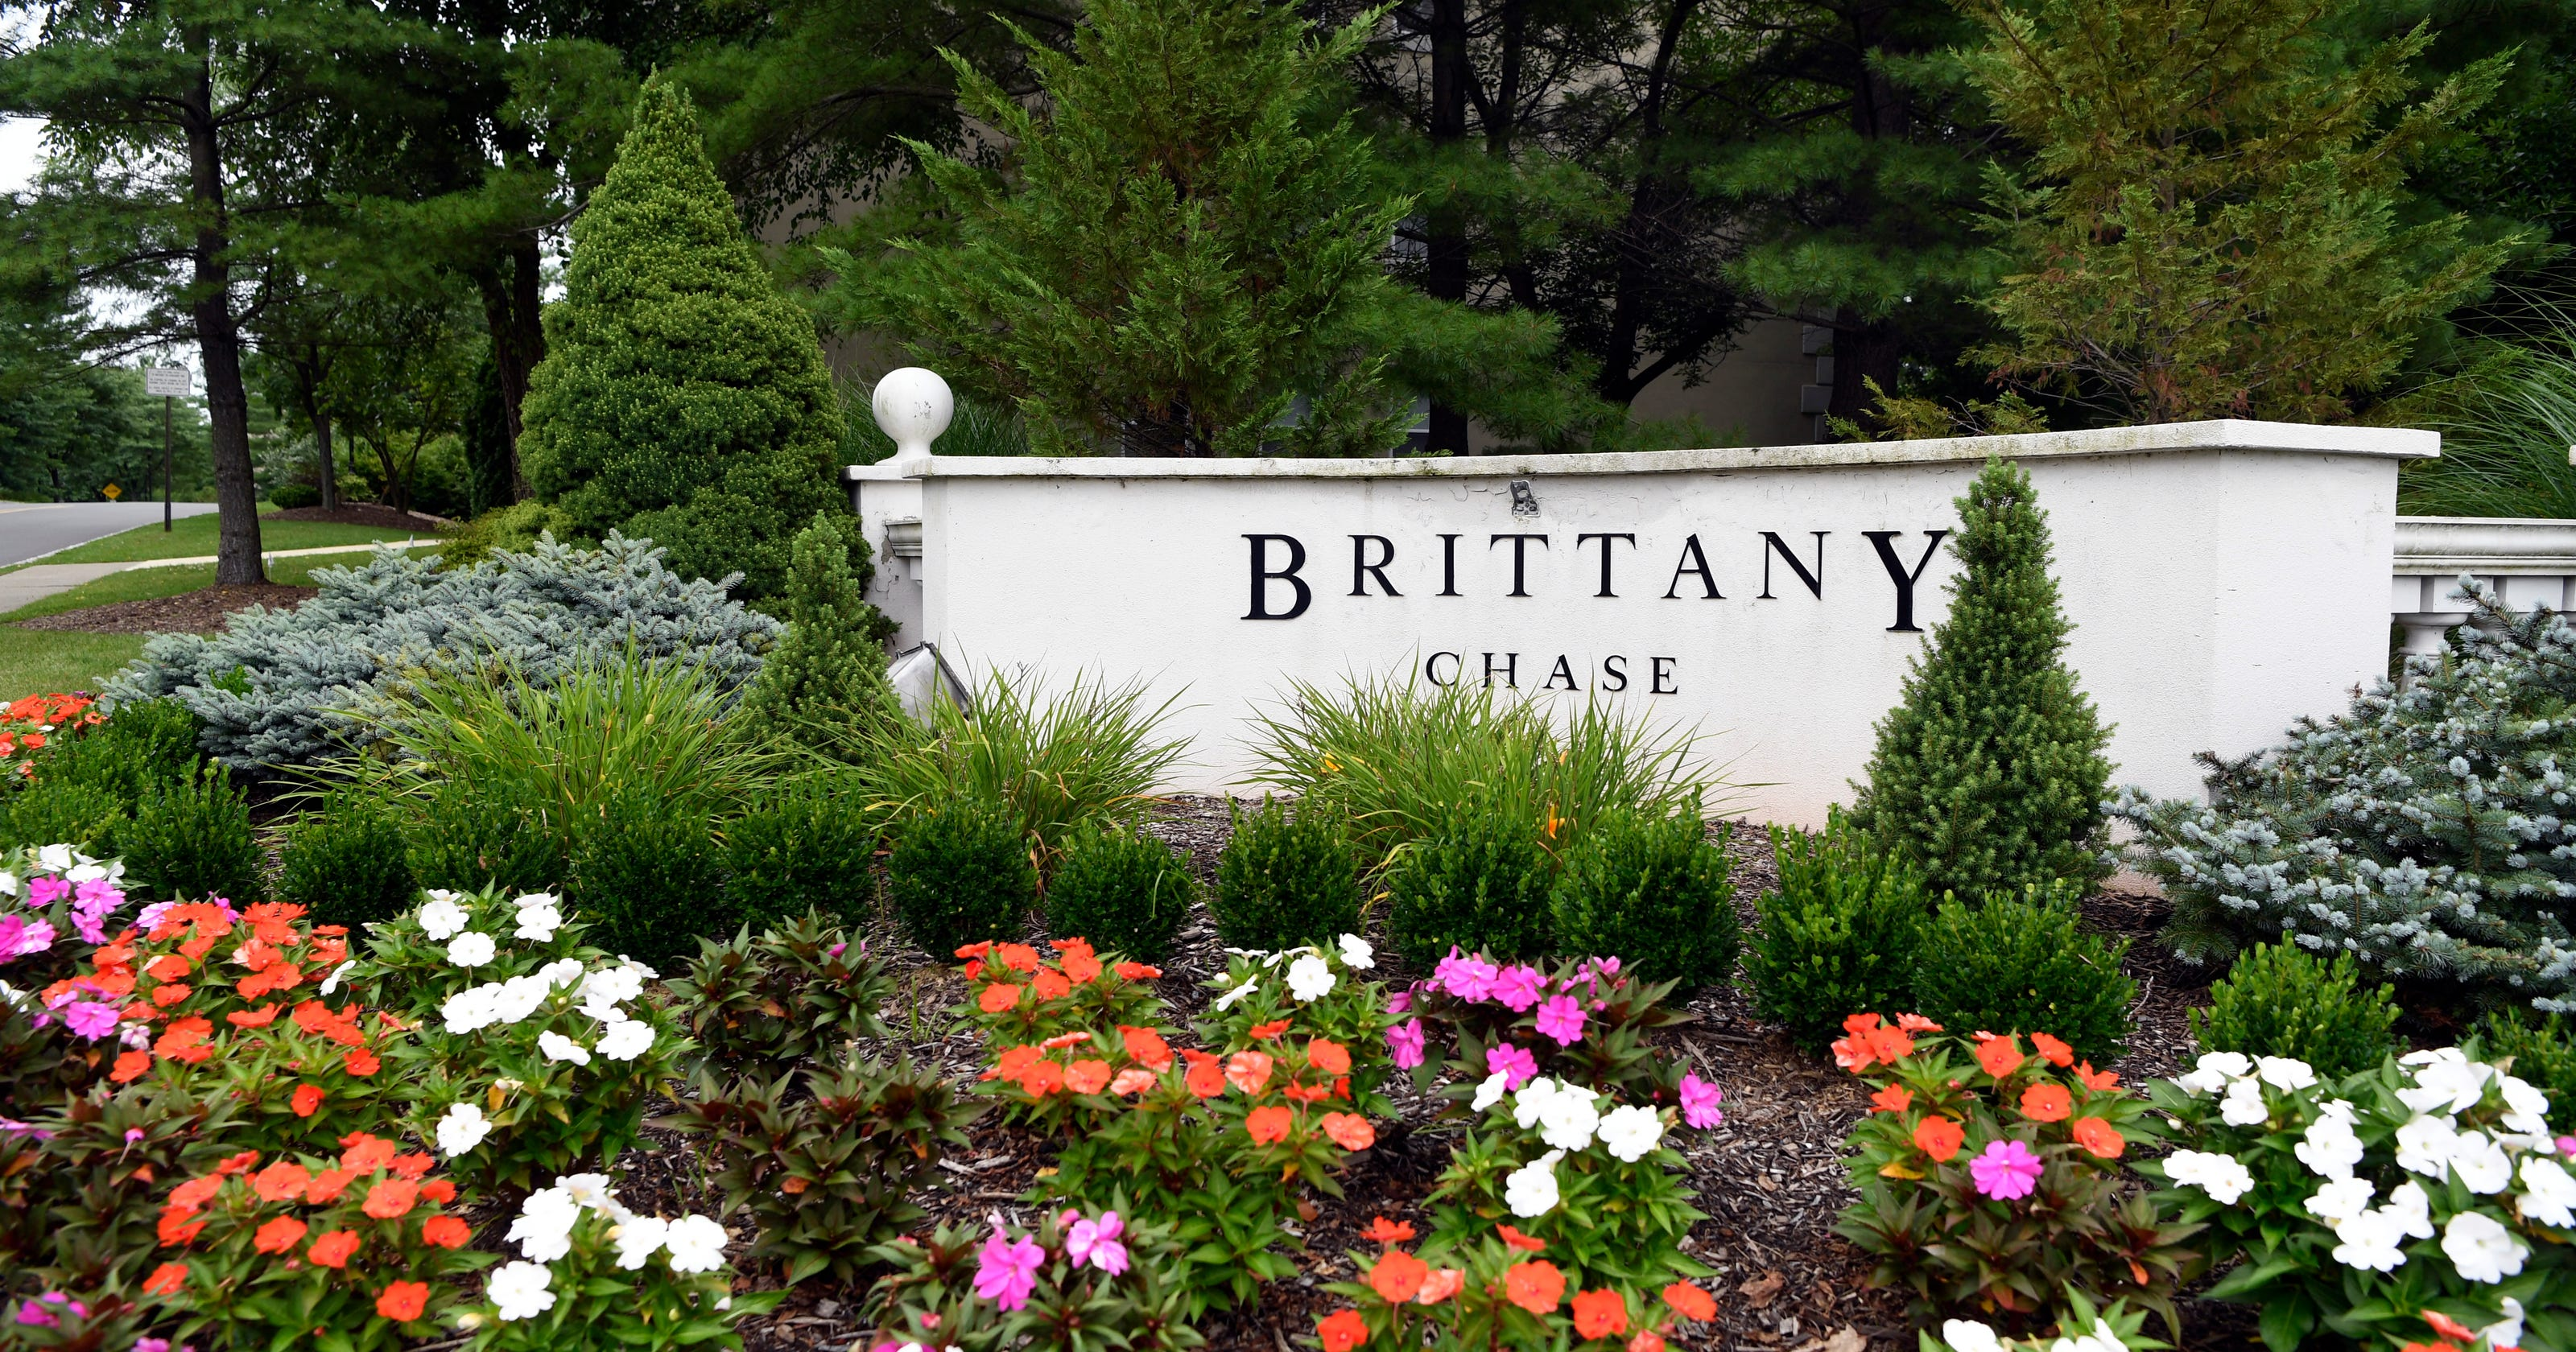 In wayne nj a 39 landslide 39 victory for brittany chase unit for Local house builders